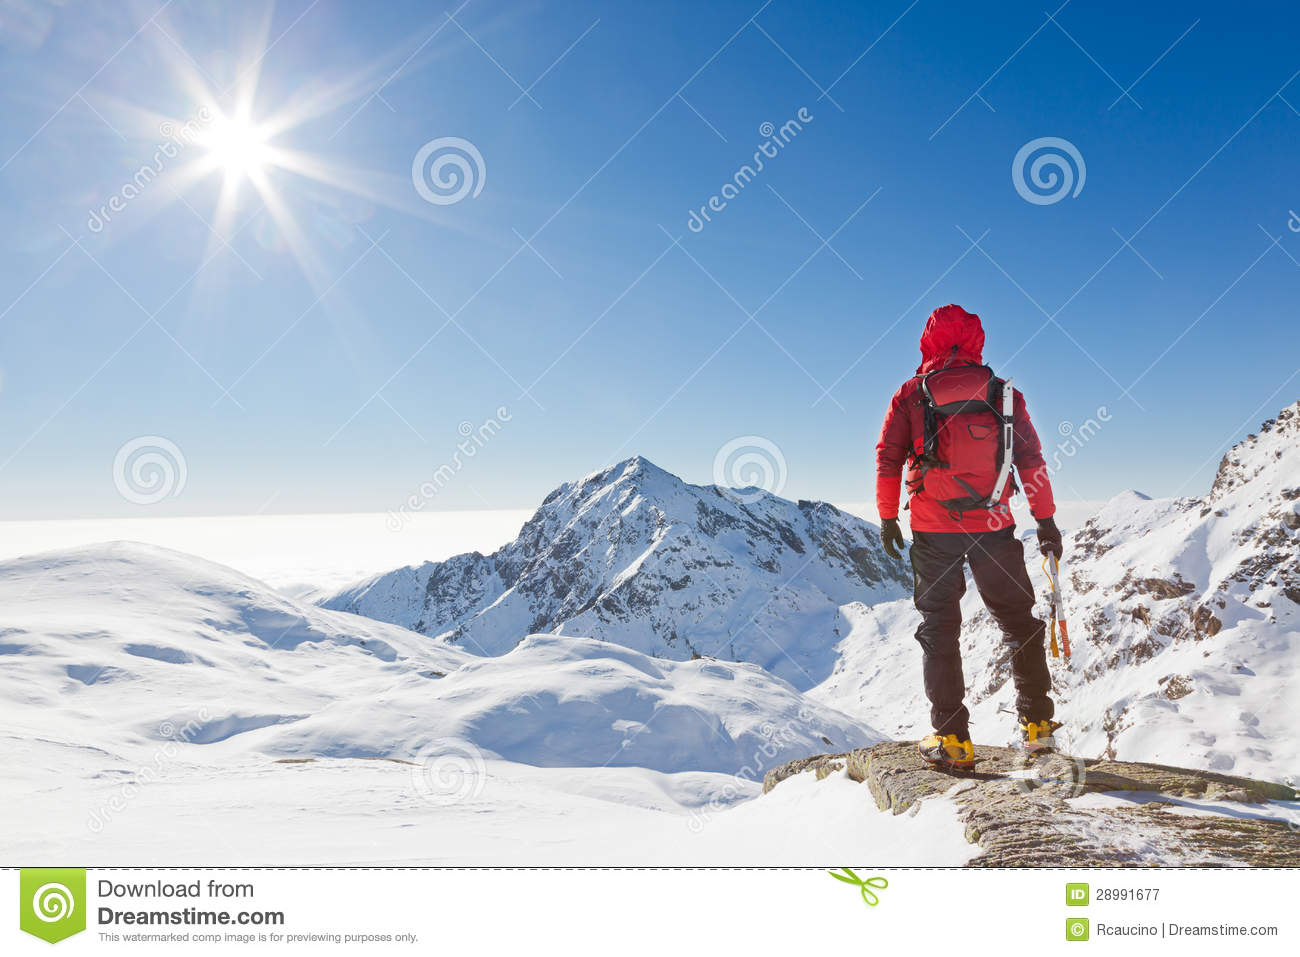 Mountaineer Looking At A Snowy Mountain Landscape Stock ...